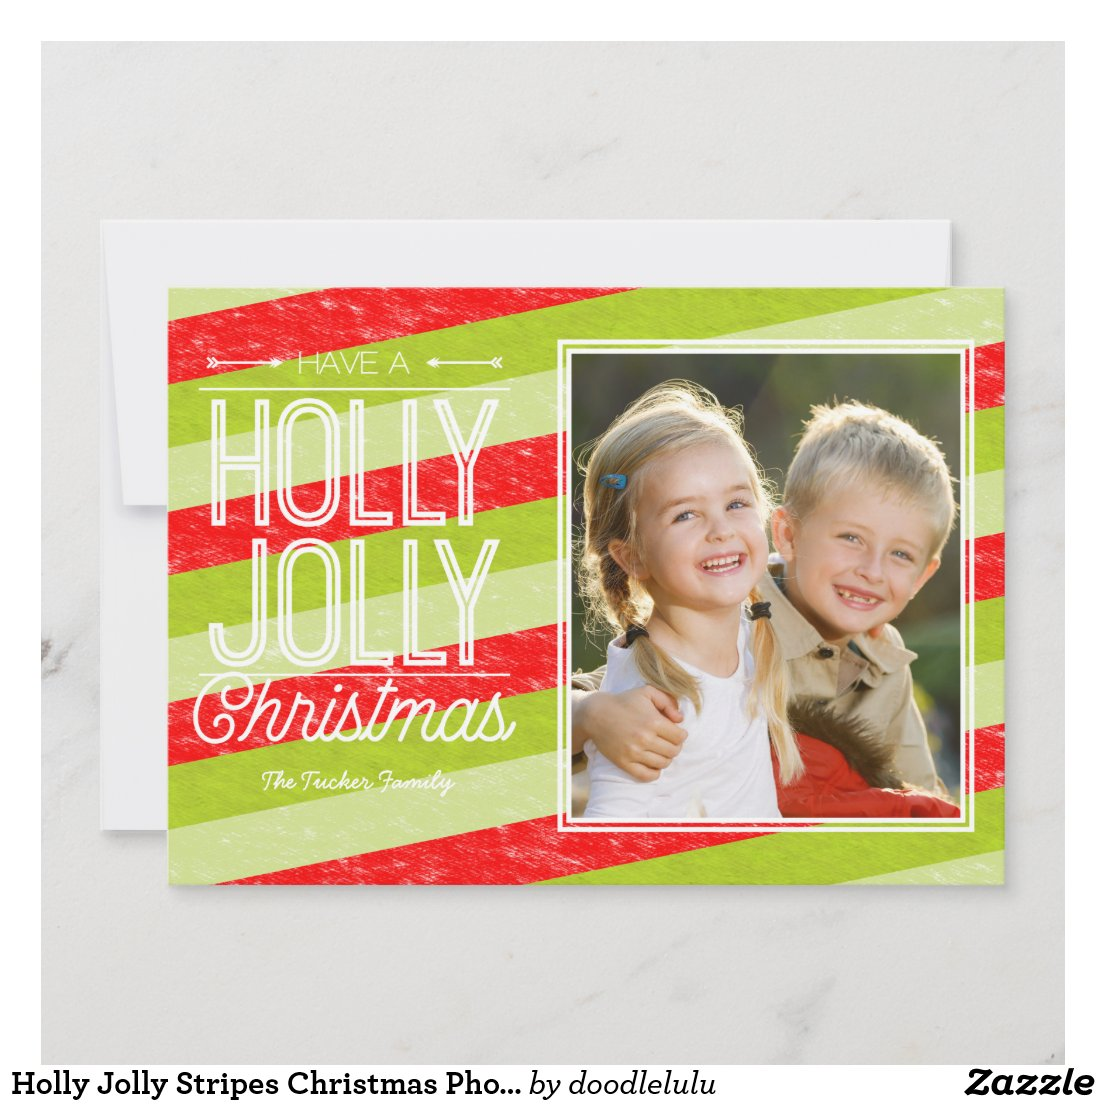 Holly Jolly Stripes Christmas Photo Holiday Card